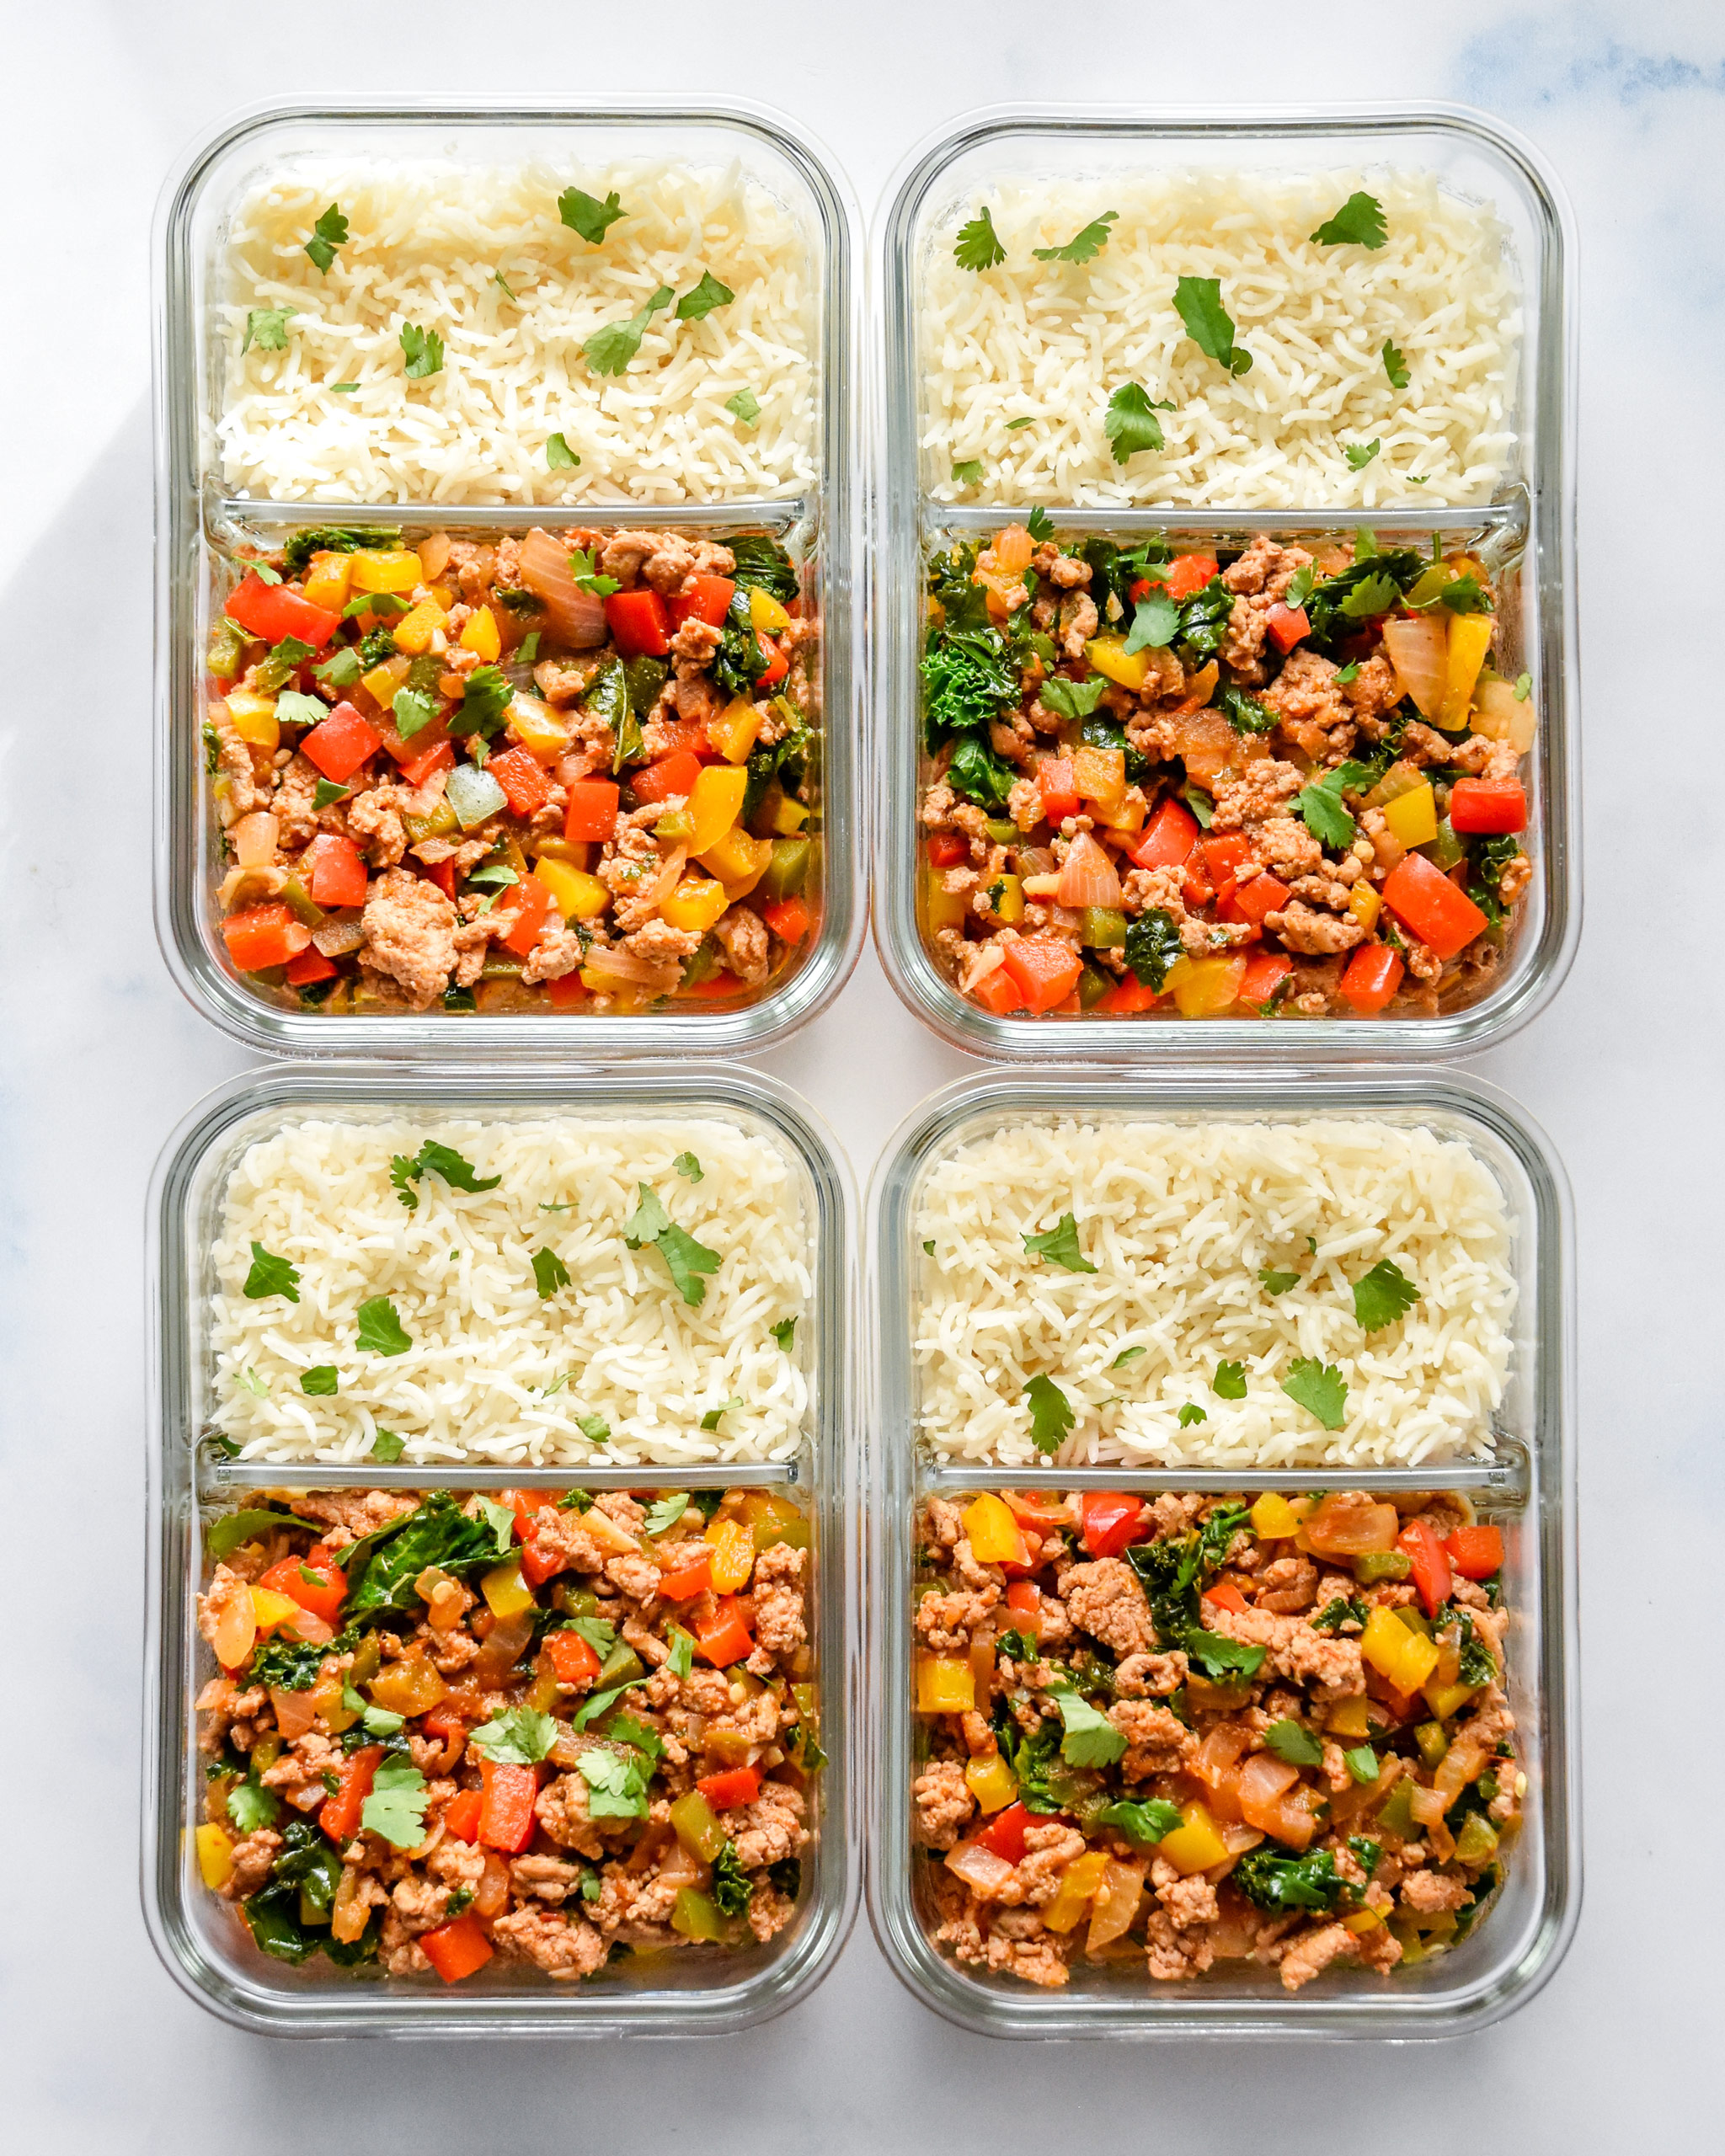 chipotle ground turkey skillet meal prep with rice in containers